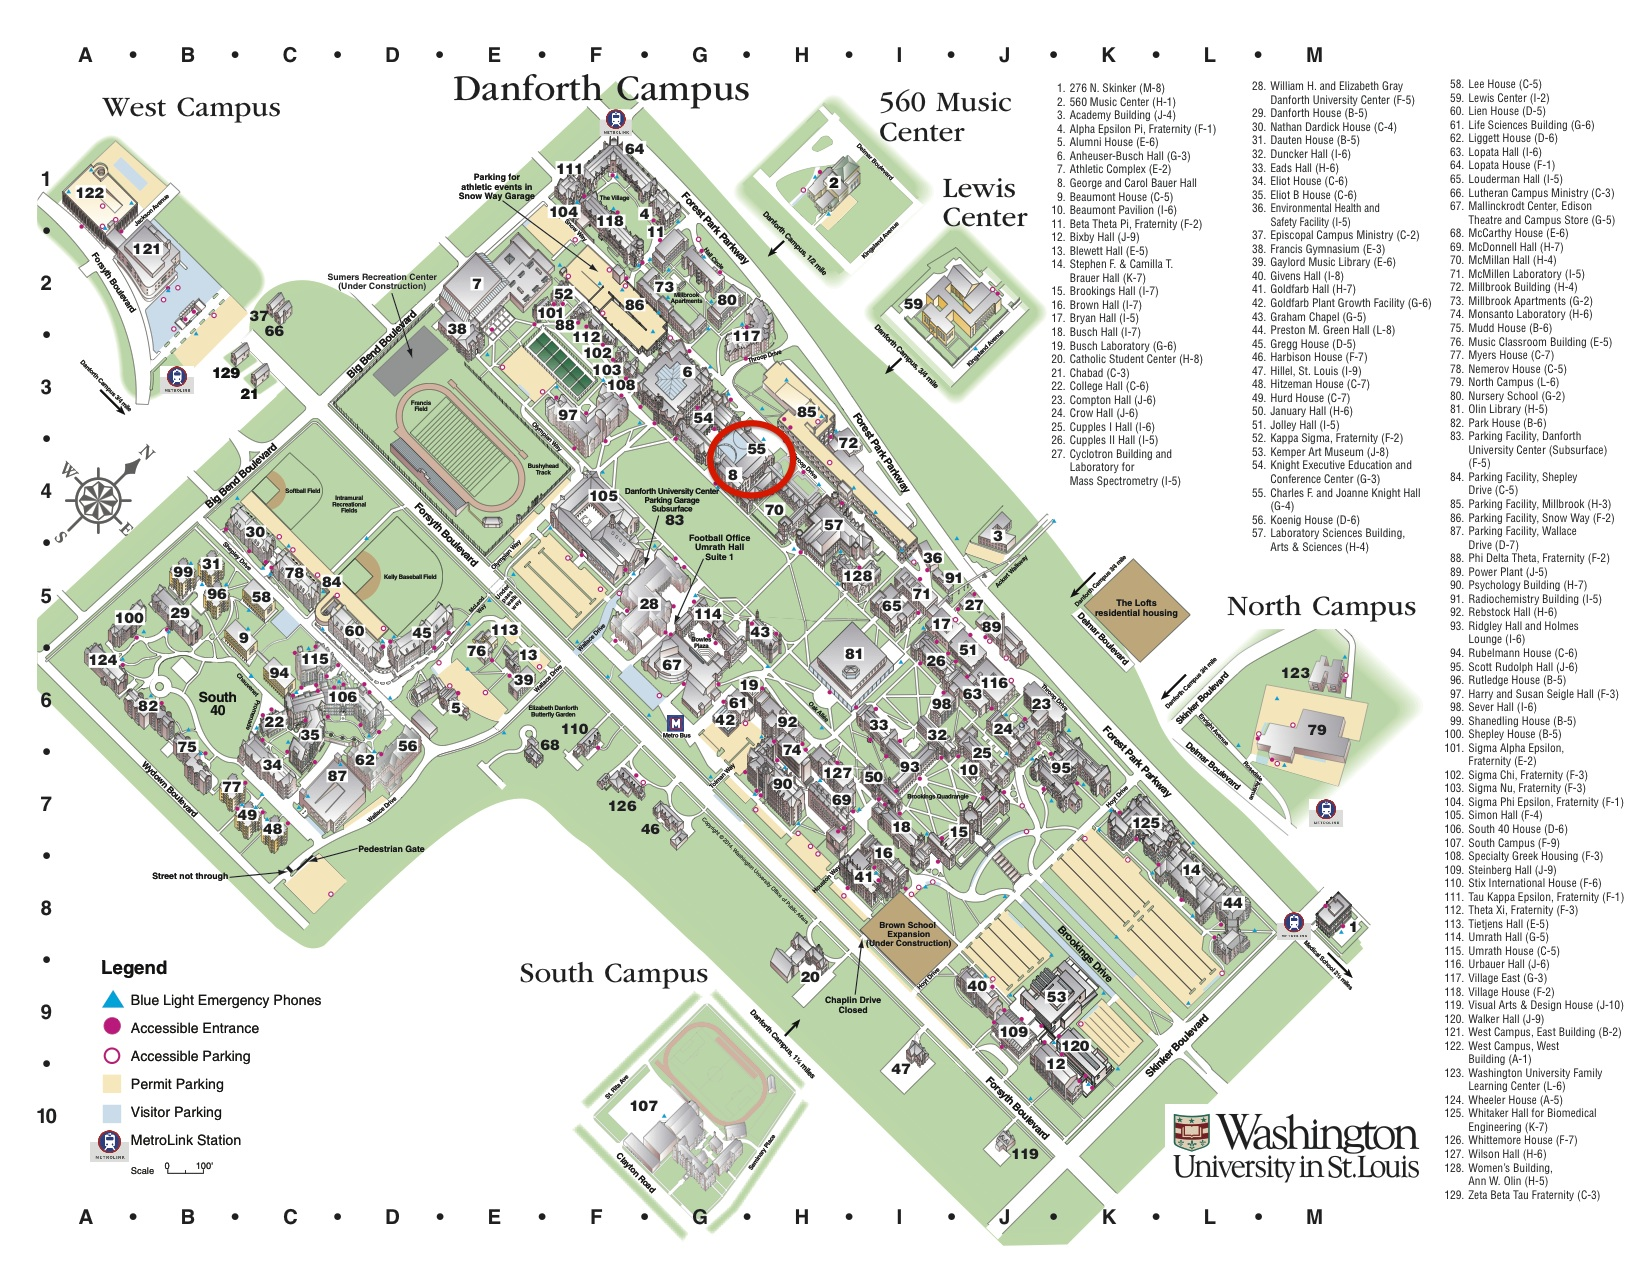 Washington University Danforth Campus Map